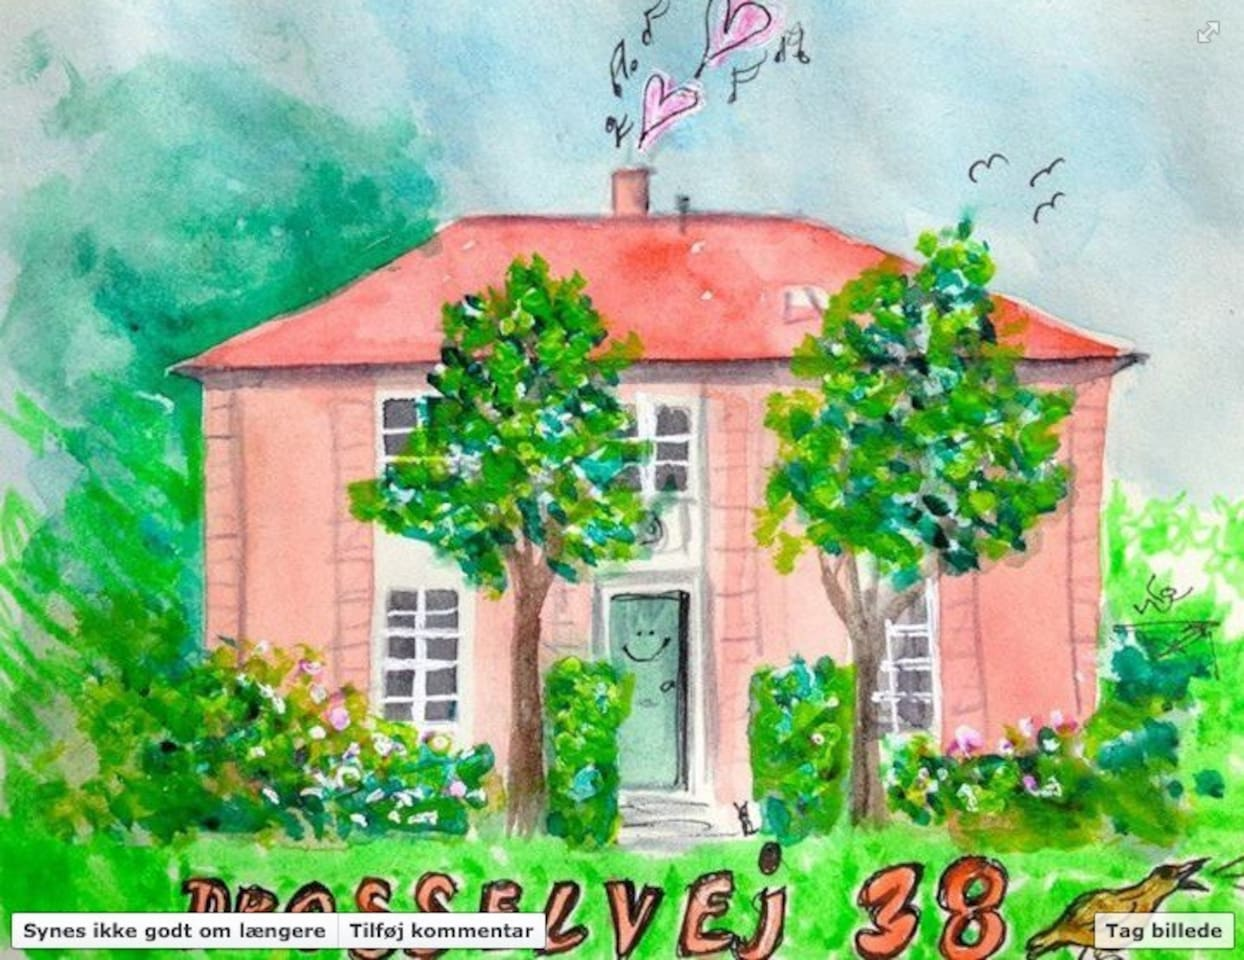 I got this drawing of the house from an old friend after she celebrated her birthday in the house.